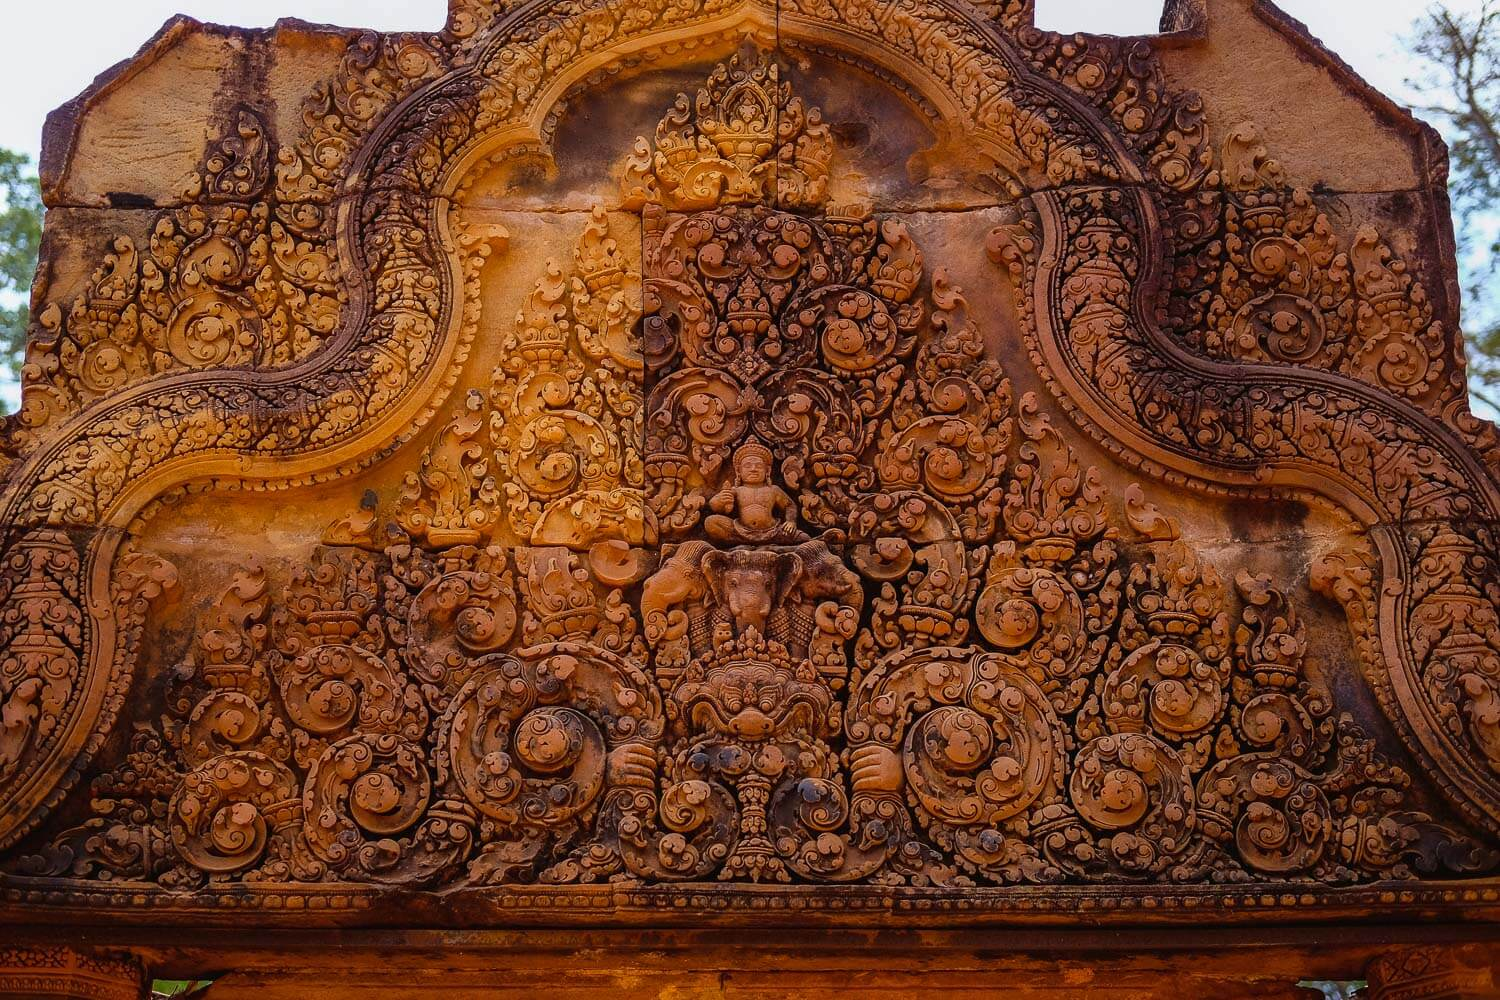 Intricate carvings at the Temple of Banteay Srei.     #siemreap #banteaysrei #travelguide #siemreapitinerary #cambodia #travelphotography #landscapephotography #fujifilm #siemreapprivatetour